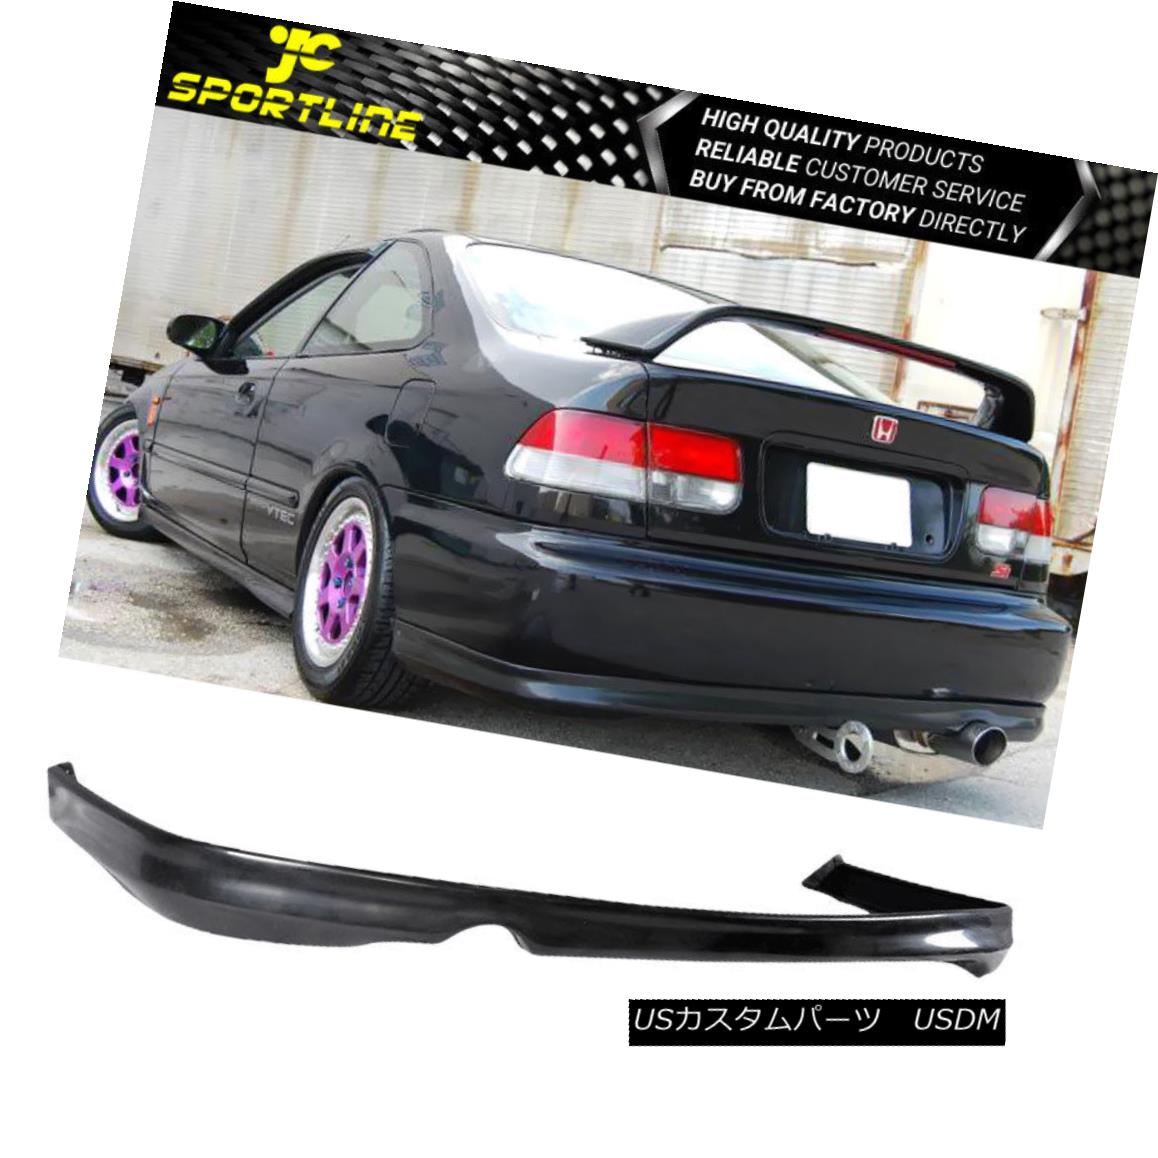 エアロパーツ For Honda Civic 2Dr 4Dr 1999 2000 T-R Style Black Rear Bumper Lip Honda Civic 2Dr 4Dr 1999 2000 T-Rスタイルブラックリアバンパーリップ